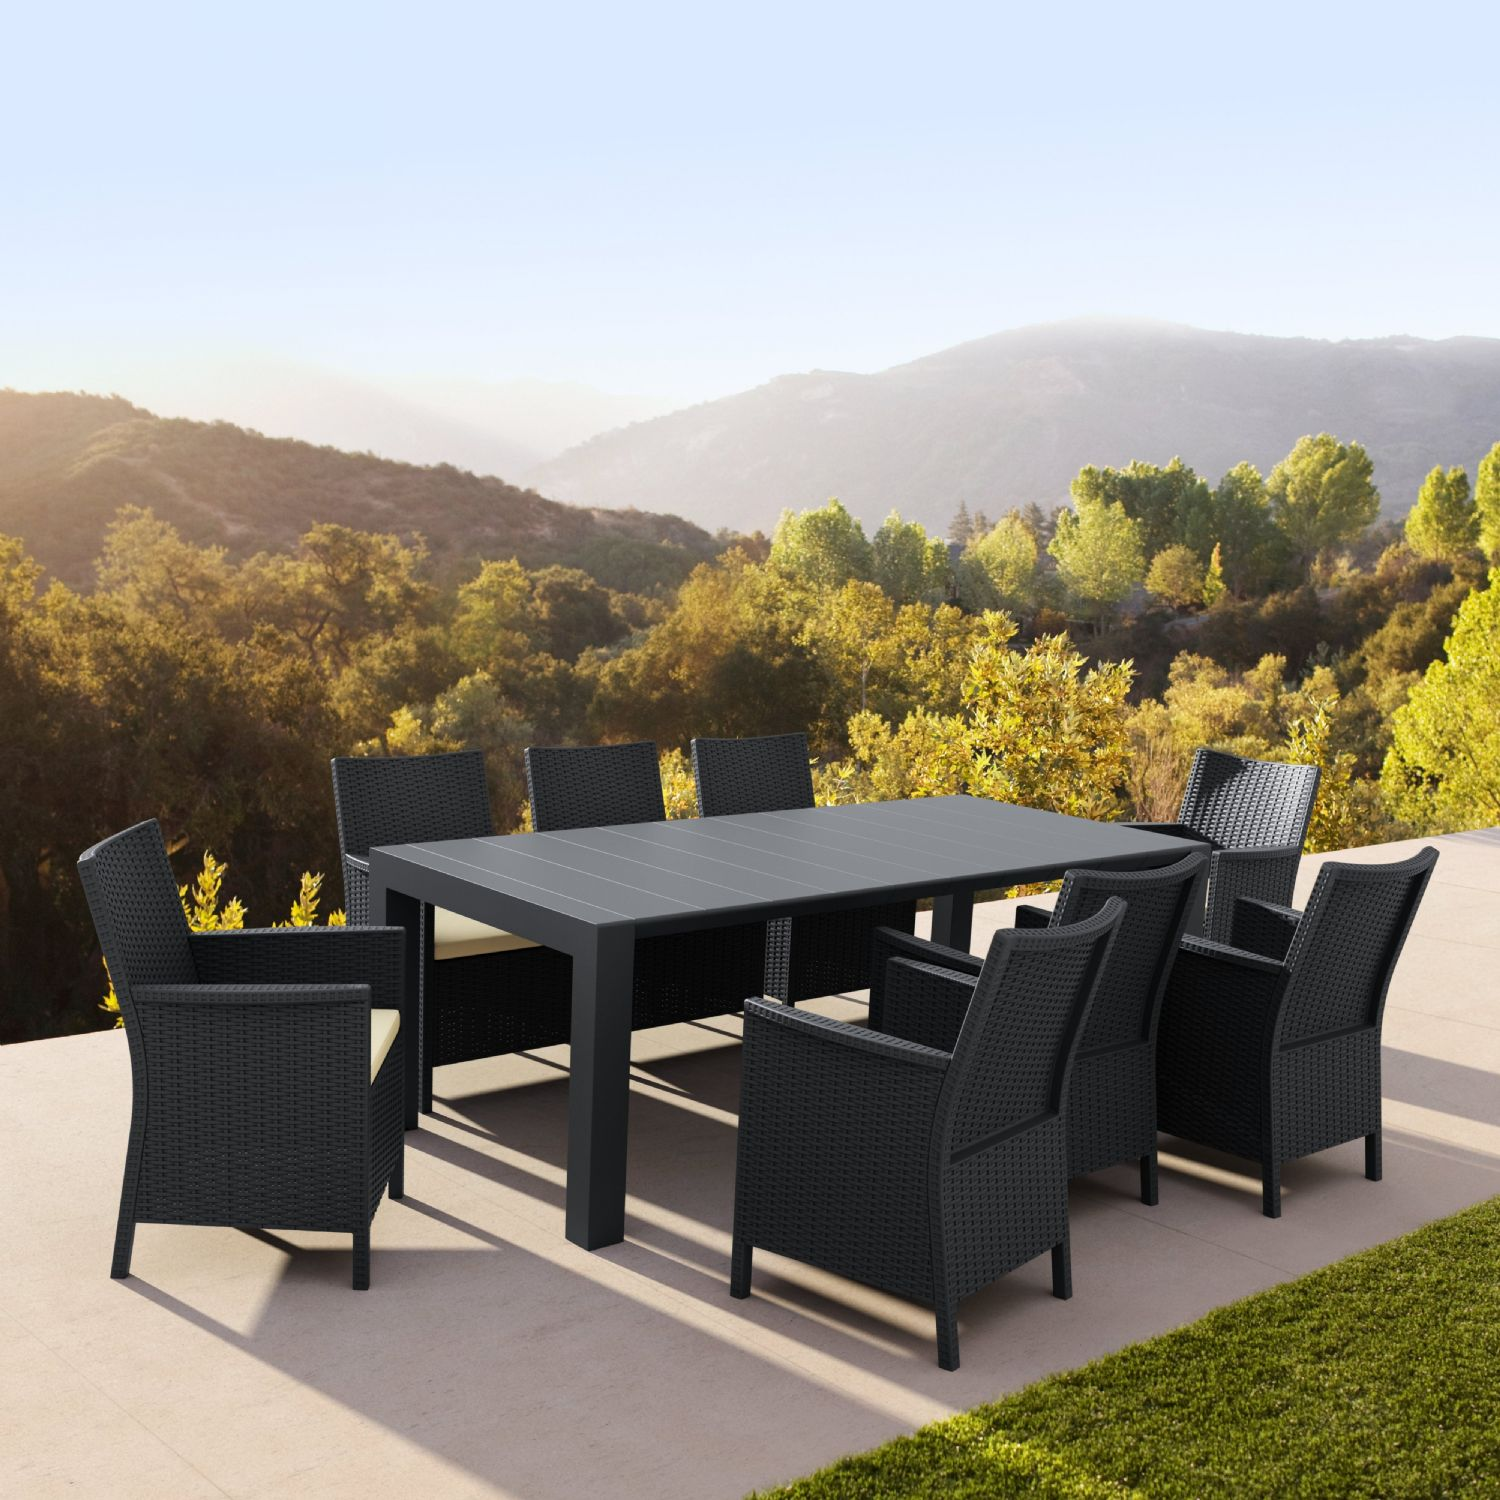 Vegas Outdoor Dining Table Extendable from 70 to 86 inch White ISP774-WH - 6